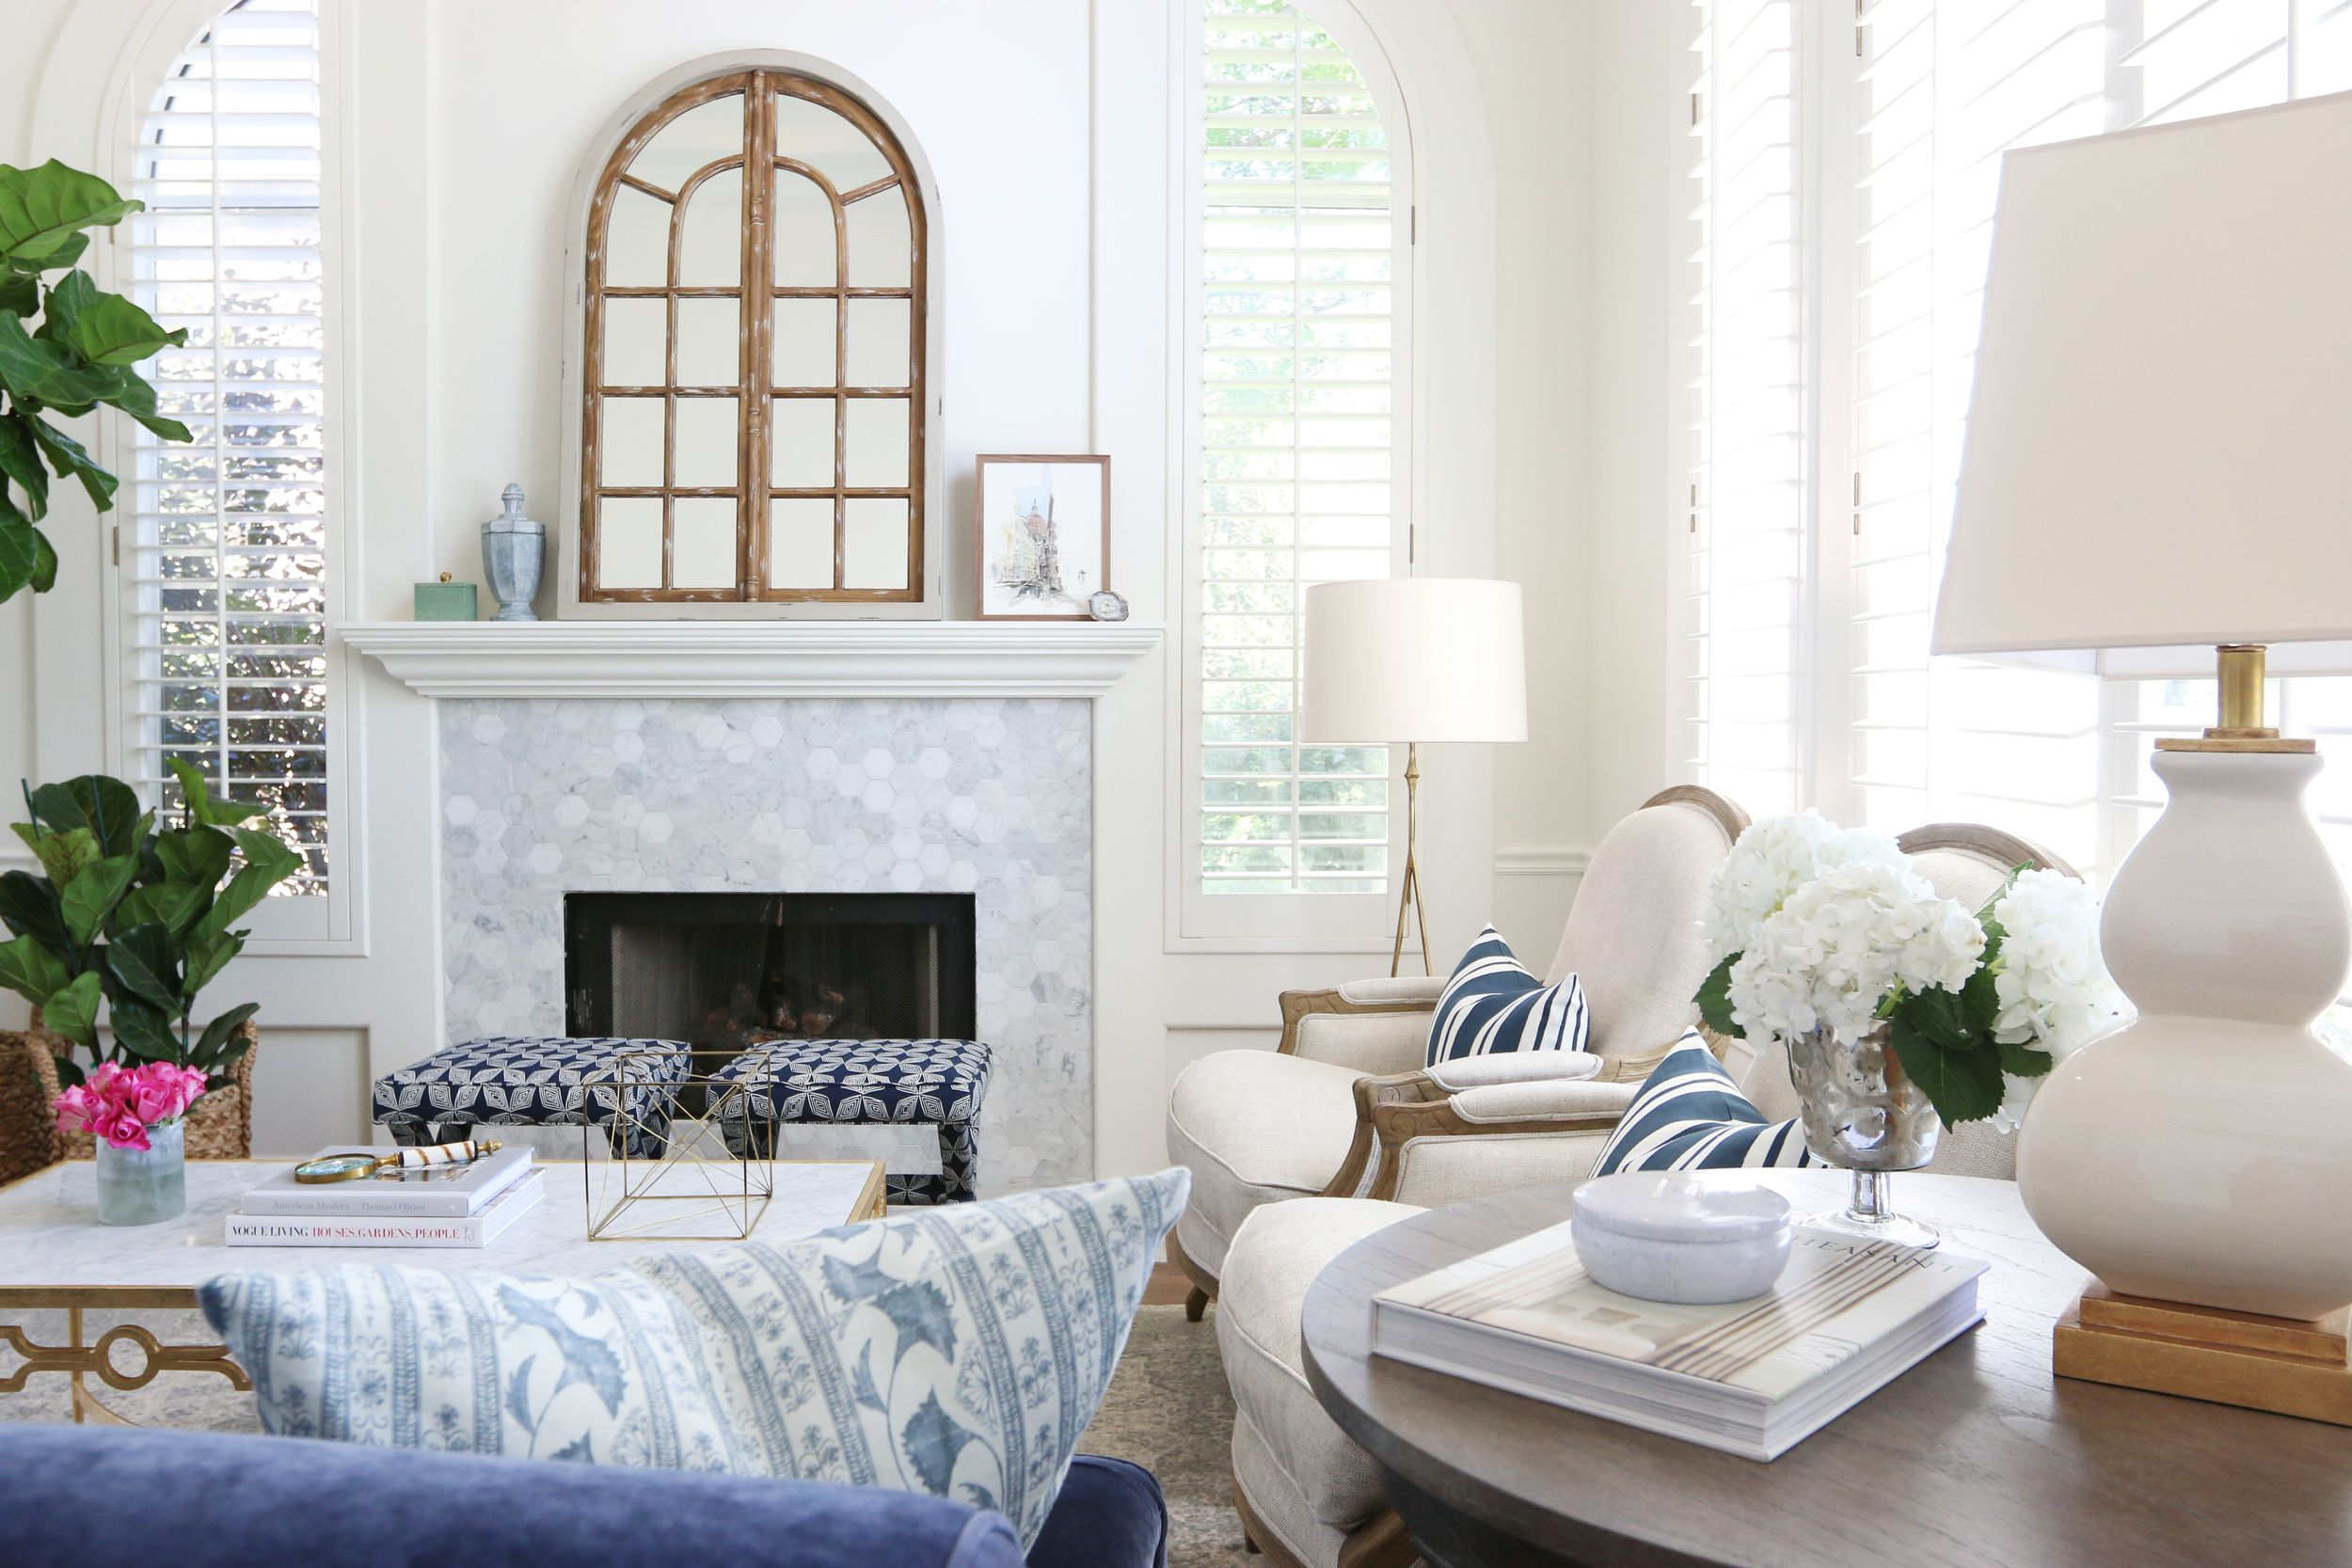 Navy, white and gray color palette || Studio McGee